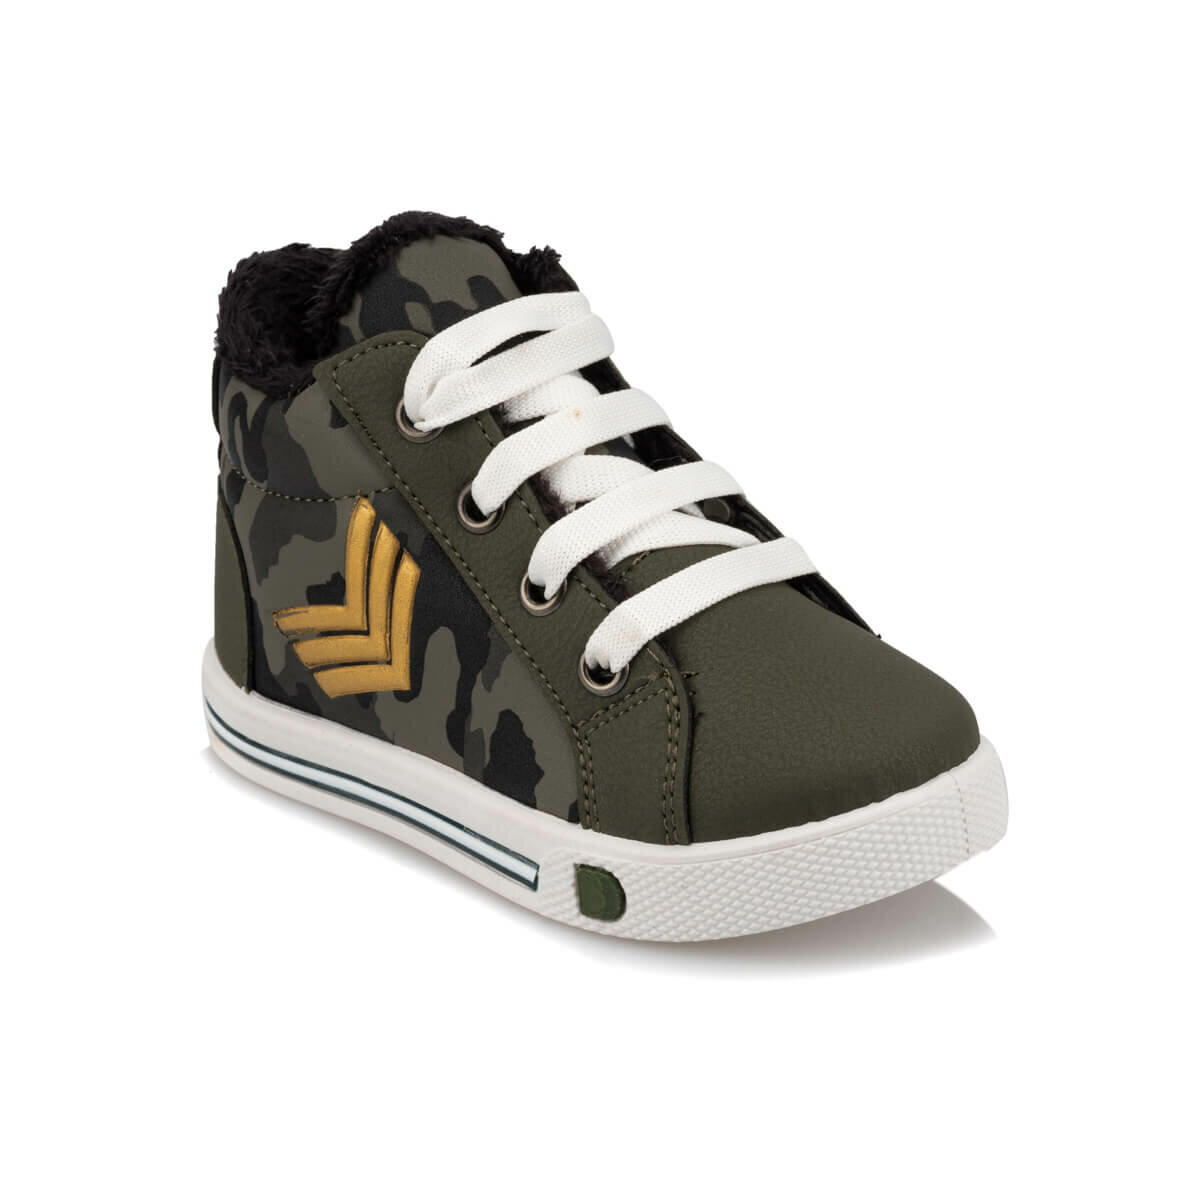 FLO 92.510834.B Khaki Male Child Sneaker Shoes Polaris